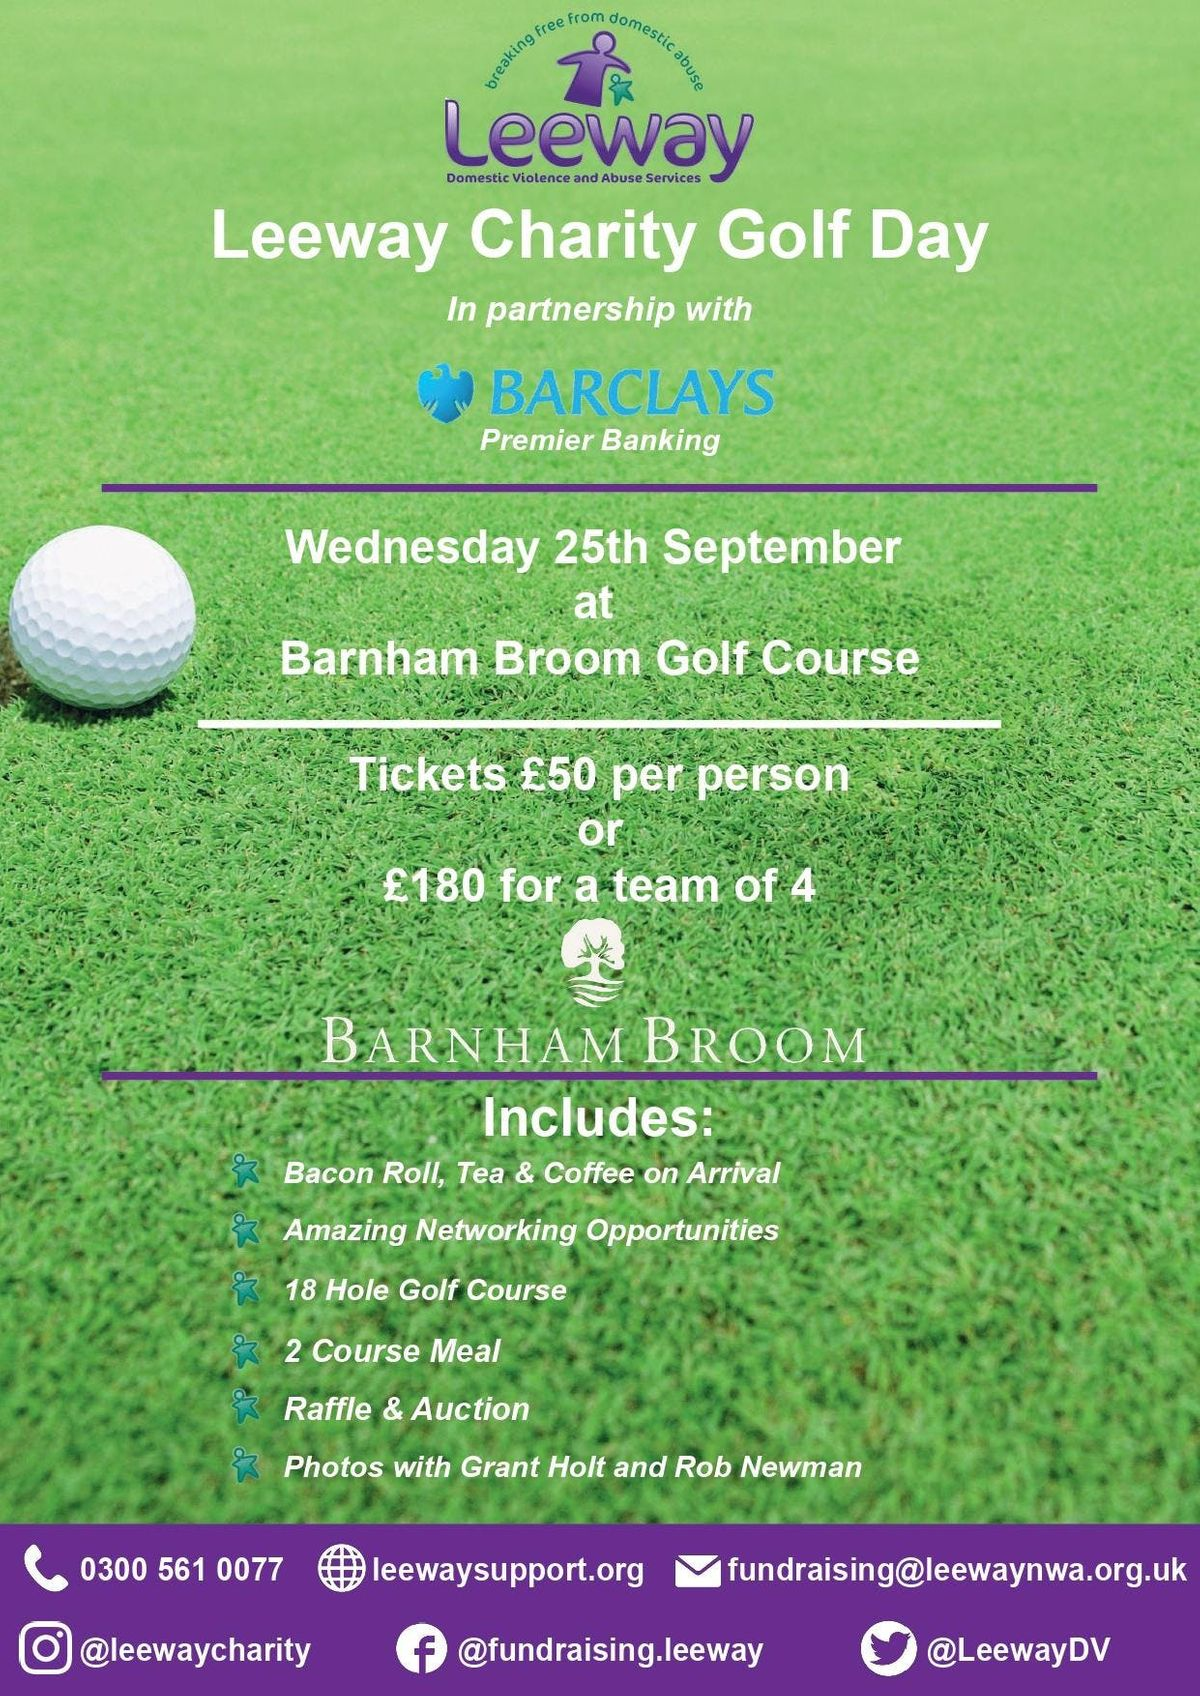 Leeway Golf Day in partnership with Barclays Premier Banking